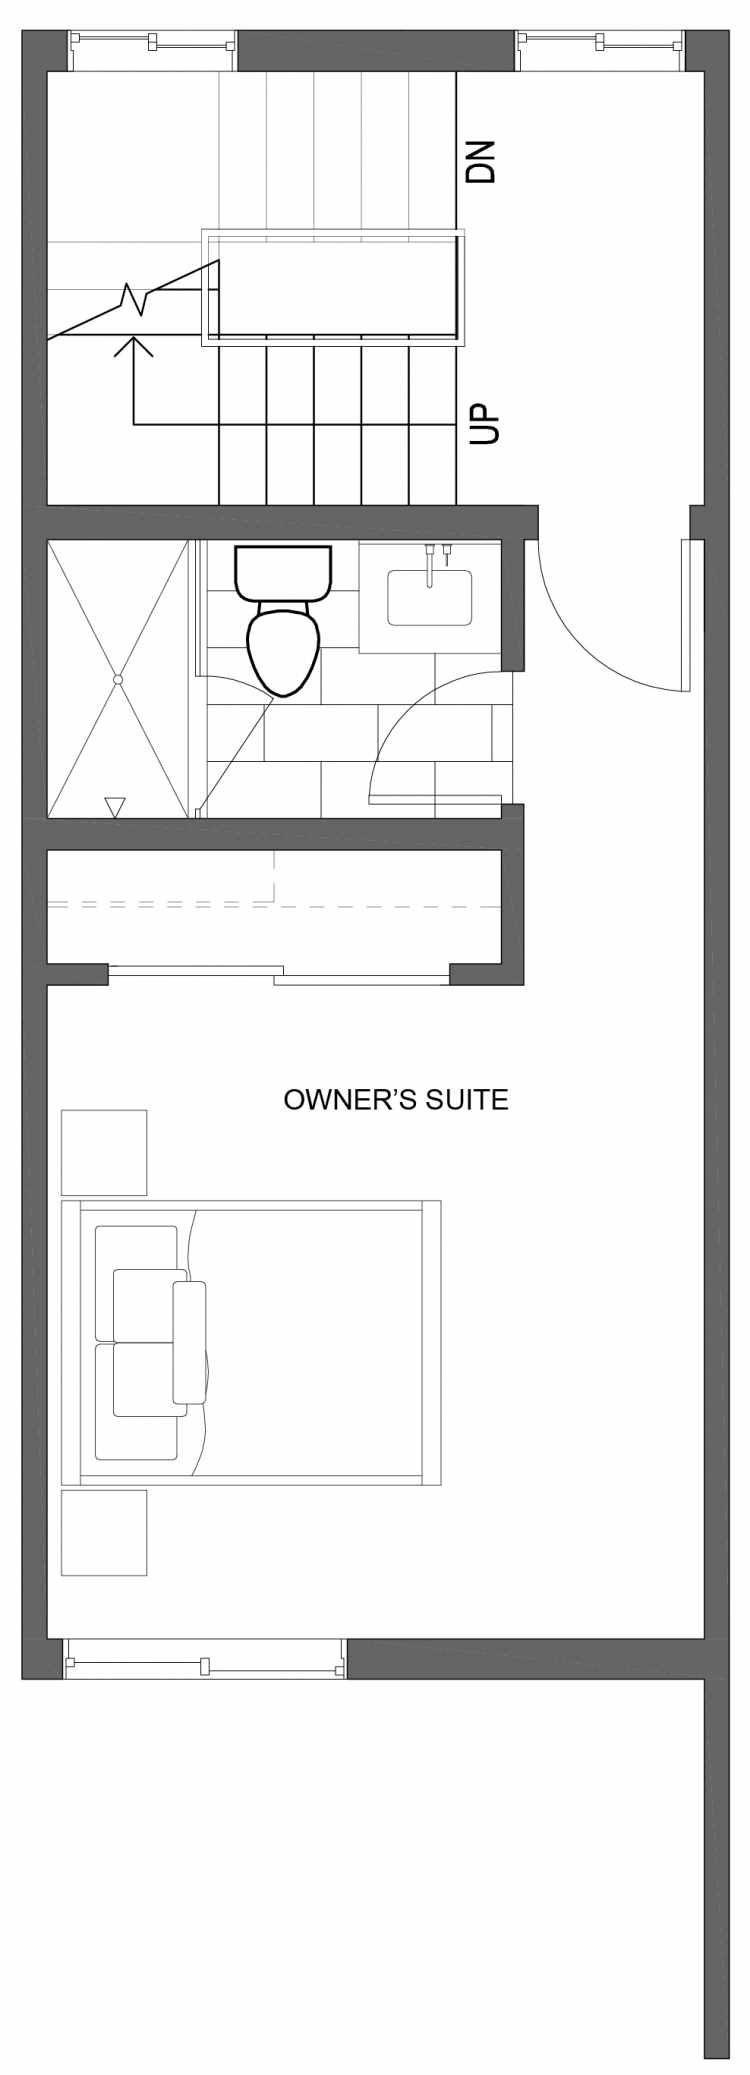 Third Floor Plan of 10421 Alderbrook Pl NW, One of the Zinnia Townhomes in the Greenwood Neighborhood of Seattle